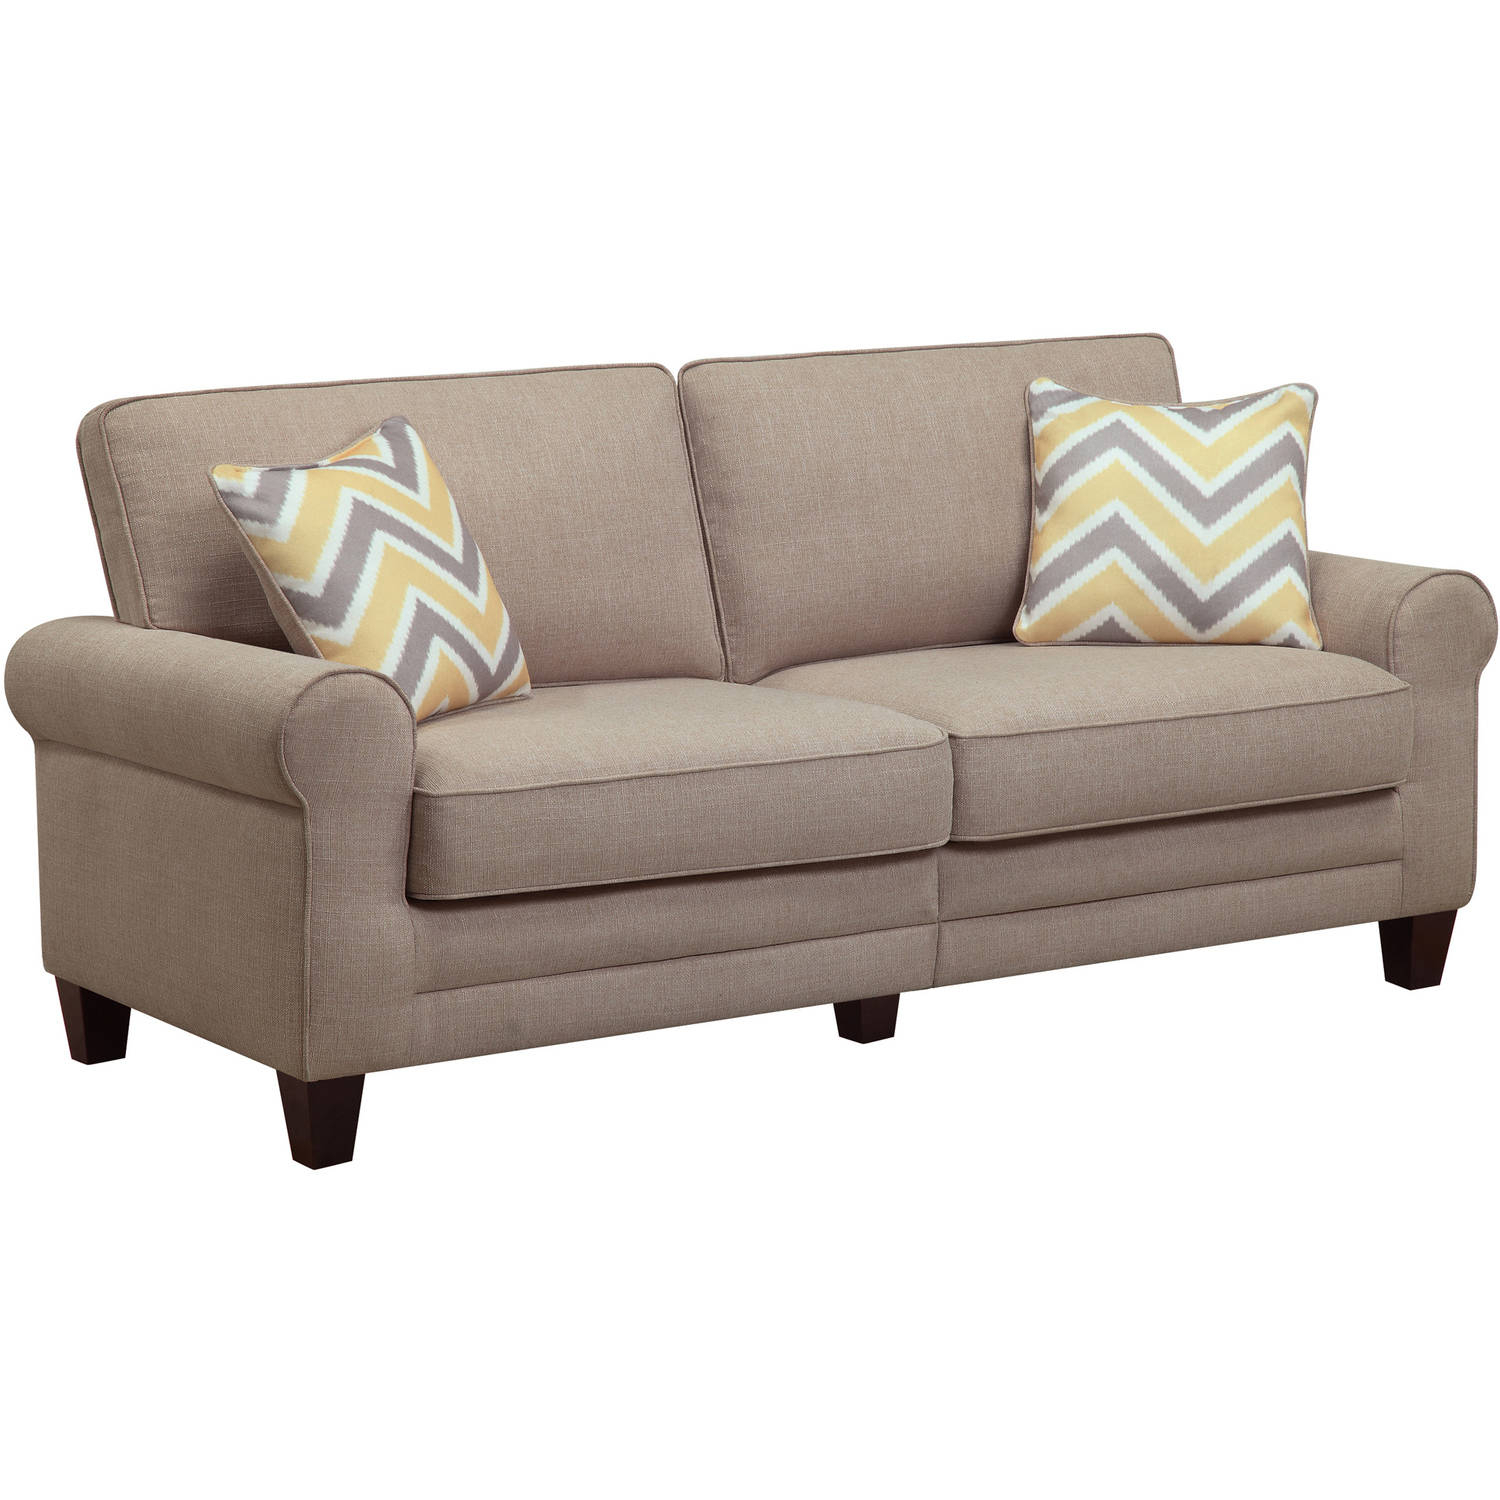 "Serta Rta Copenhagen Collection 73"" Sofa, Multiple Colors – Walmart For Mansfield Graphite Velvet Sofa Chairs (View 17 of 25)"